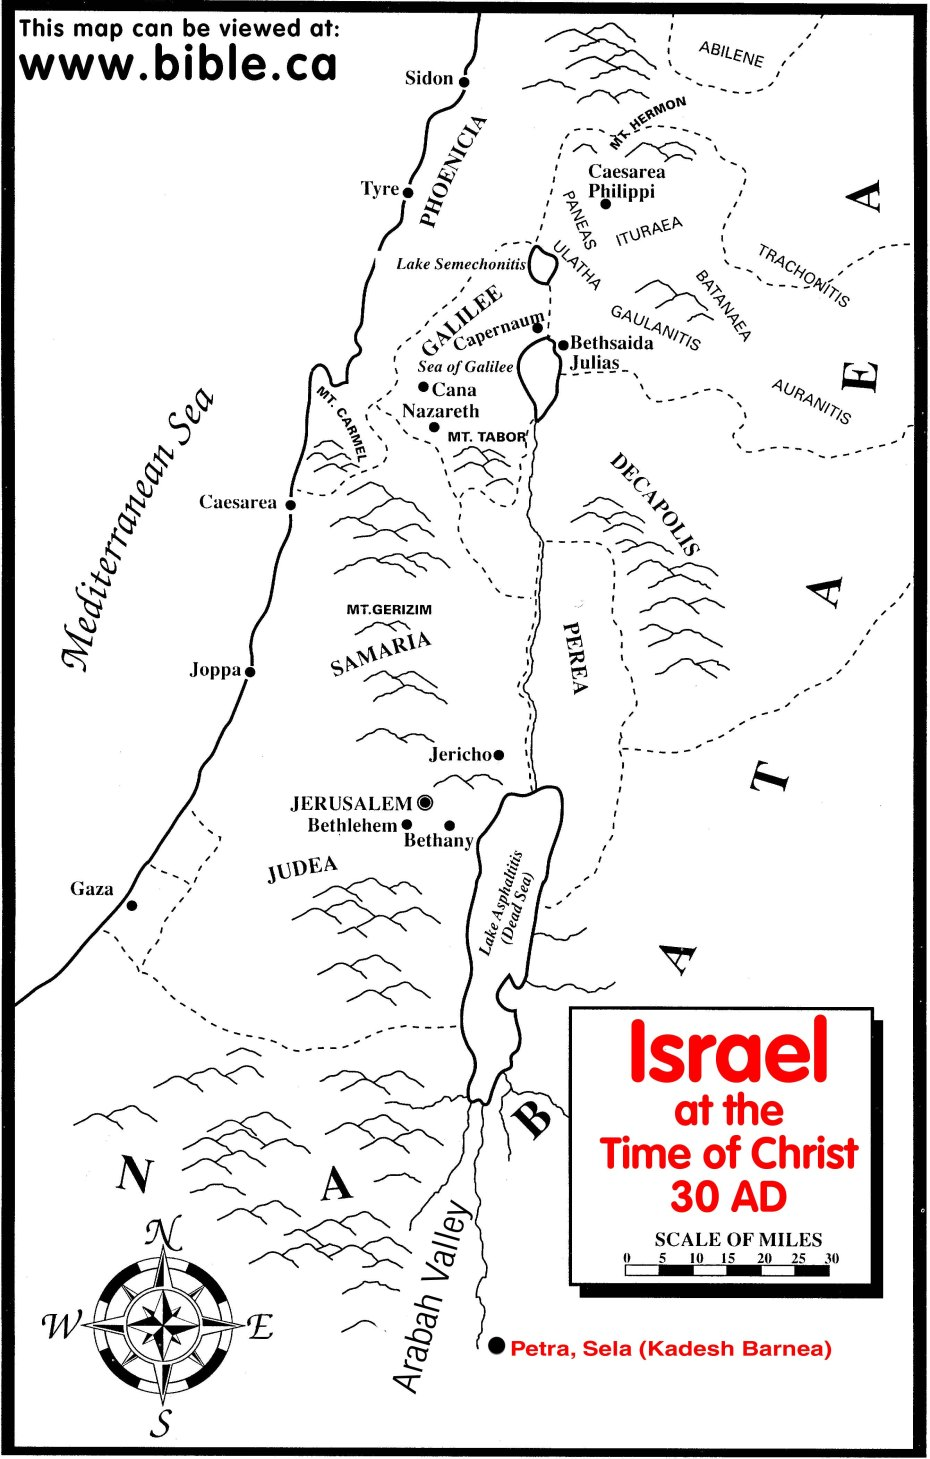 maps-palestine times of Jesus-33AD